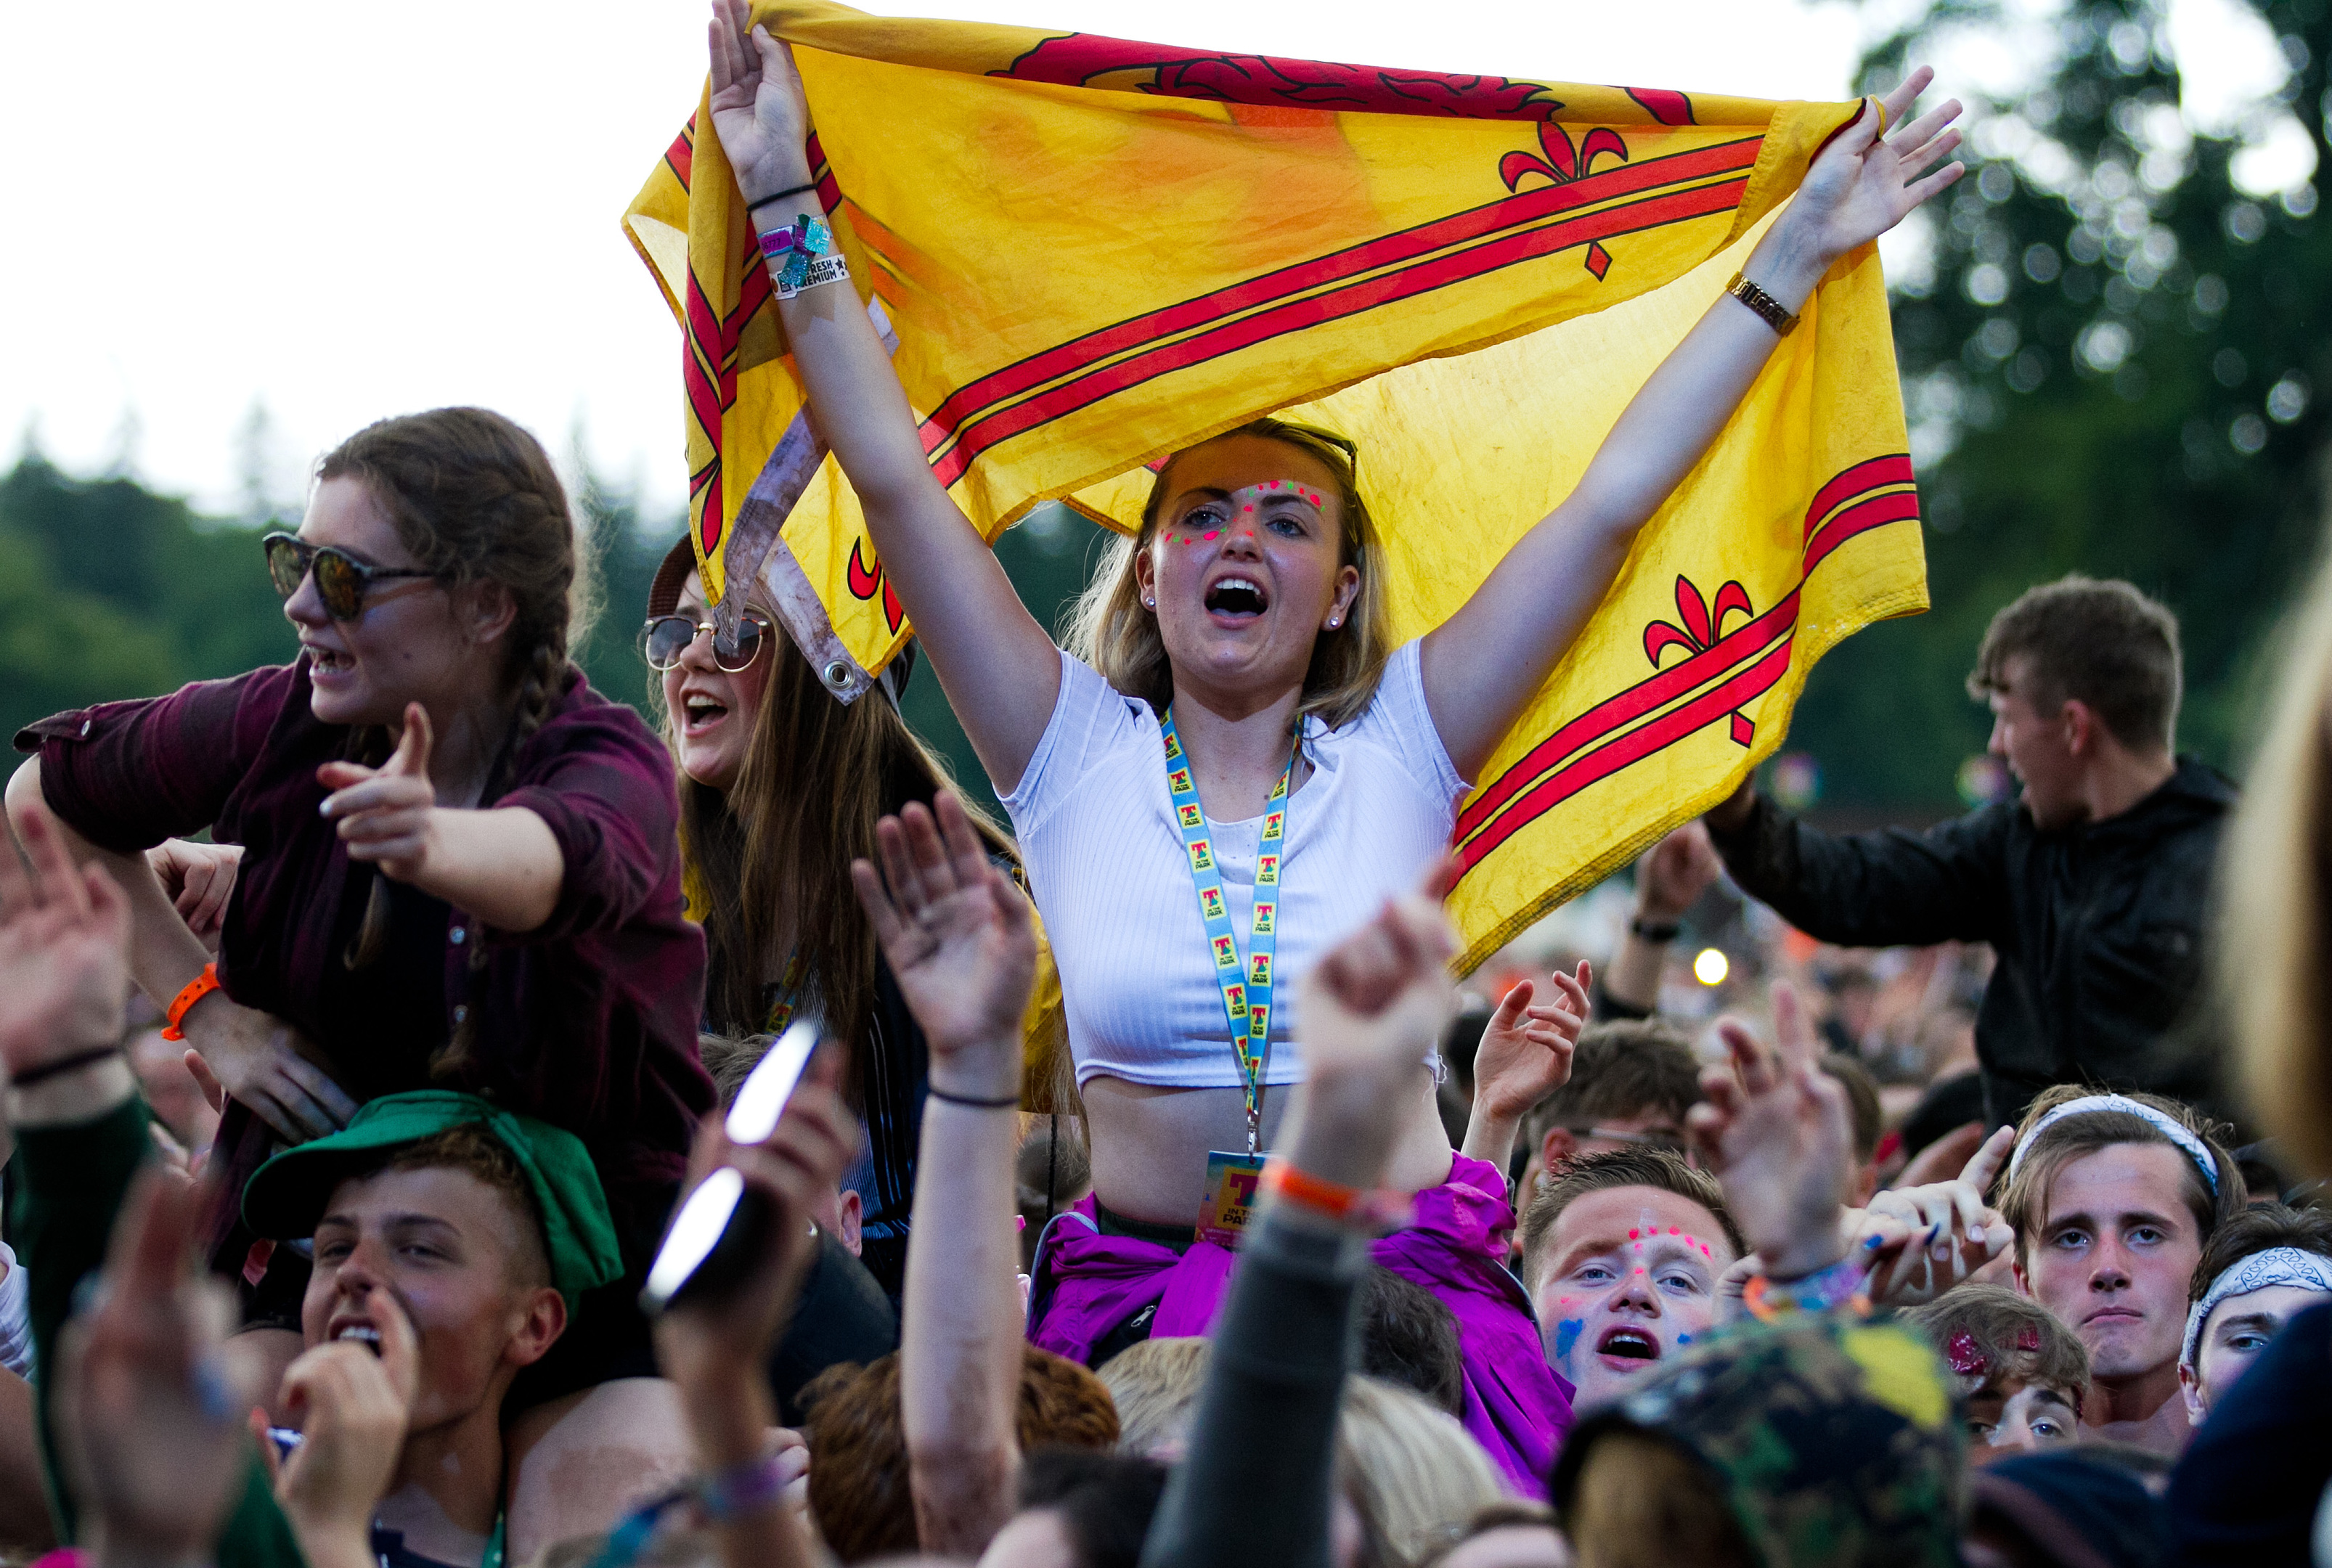 T in the Park (Andrew Cawley/DC Thomson)